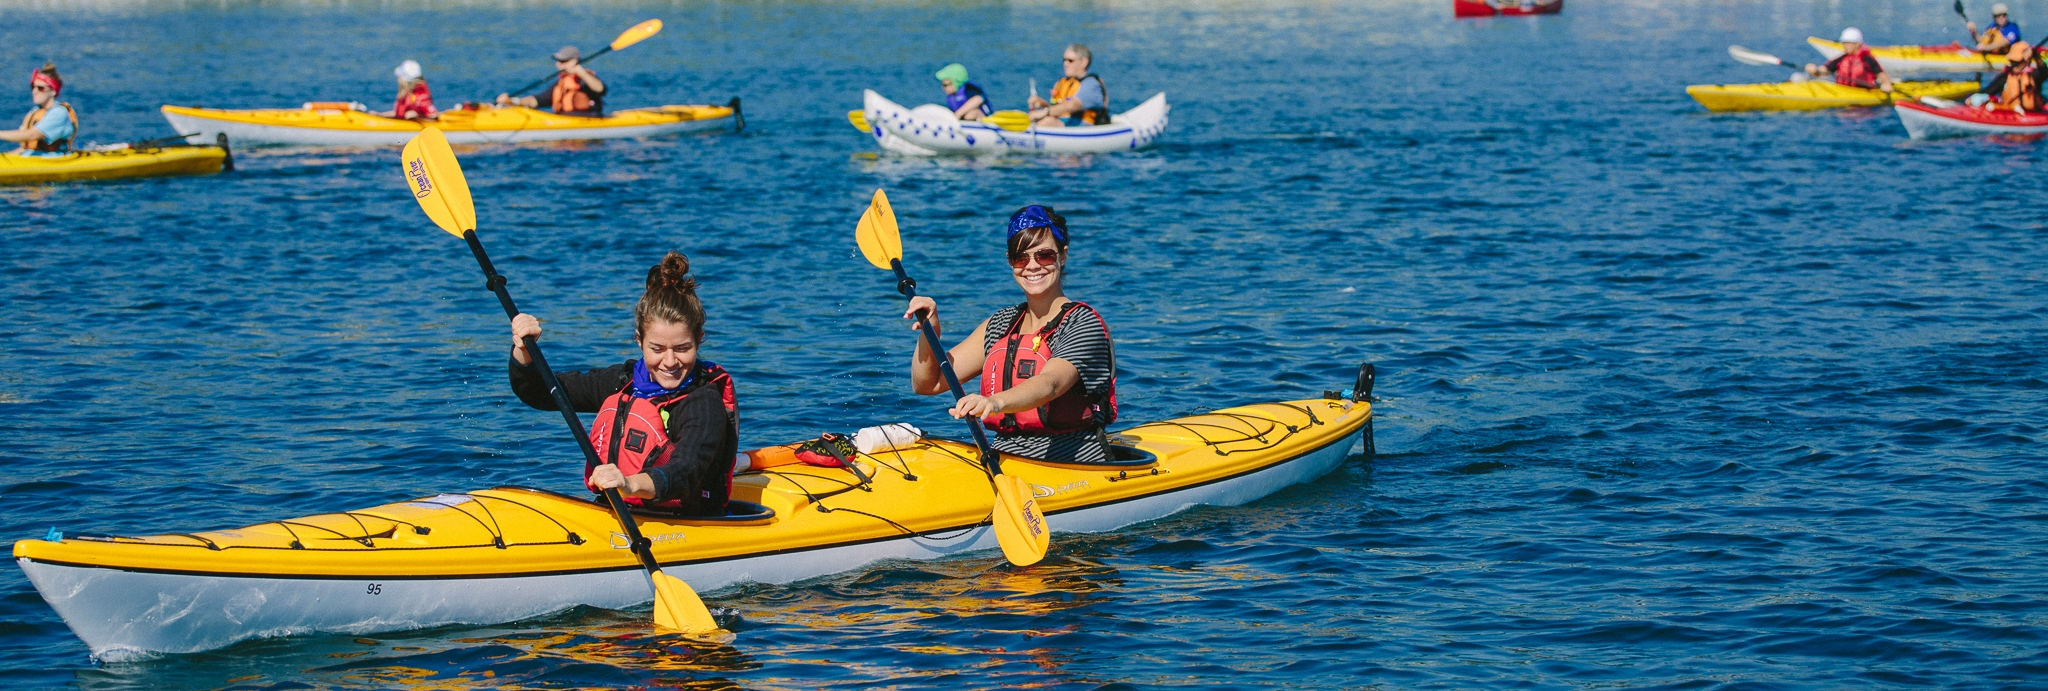 Paddle Health Kayak Canoe Paddleboard Cure Inspire Victoria Event